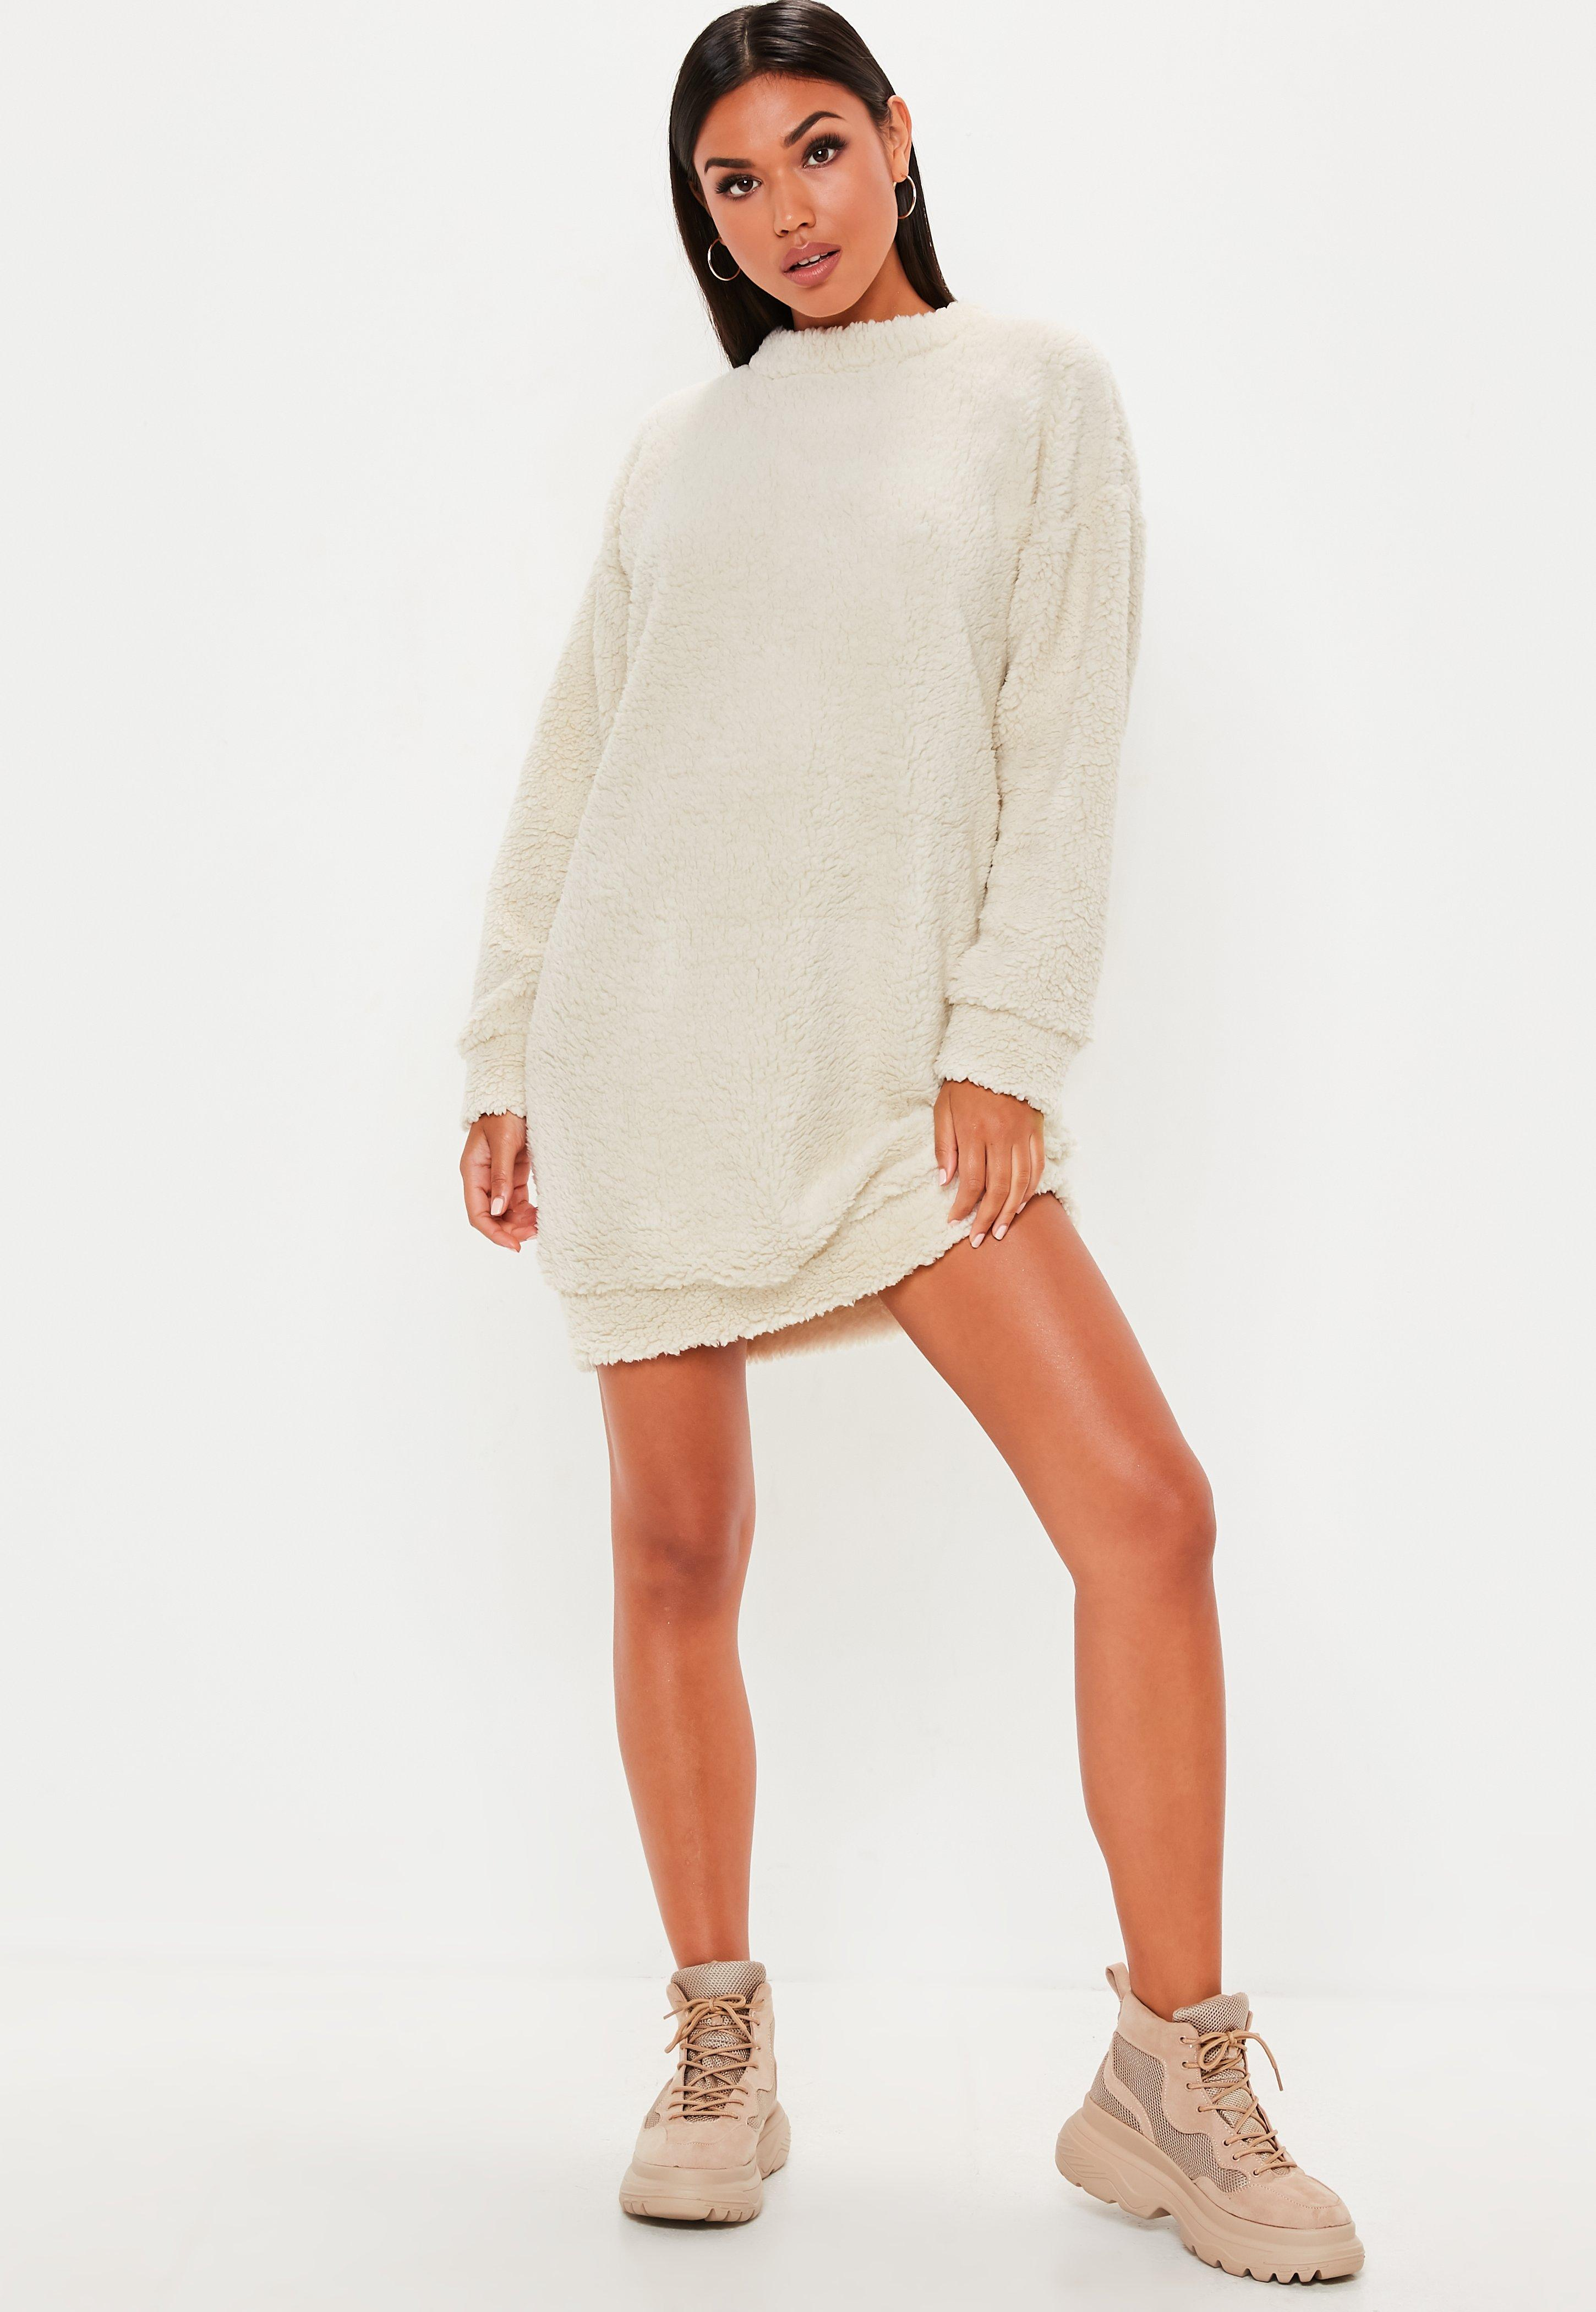 a78c83e8e6a Cream Borg Teddy Crew Neck Sweatshirt Dress